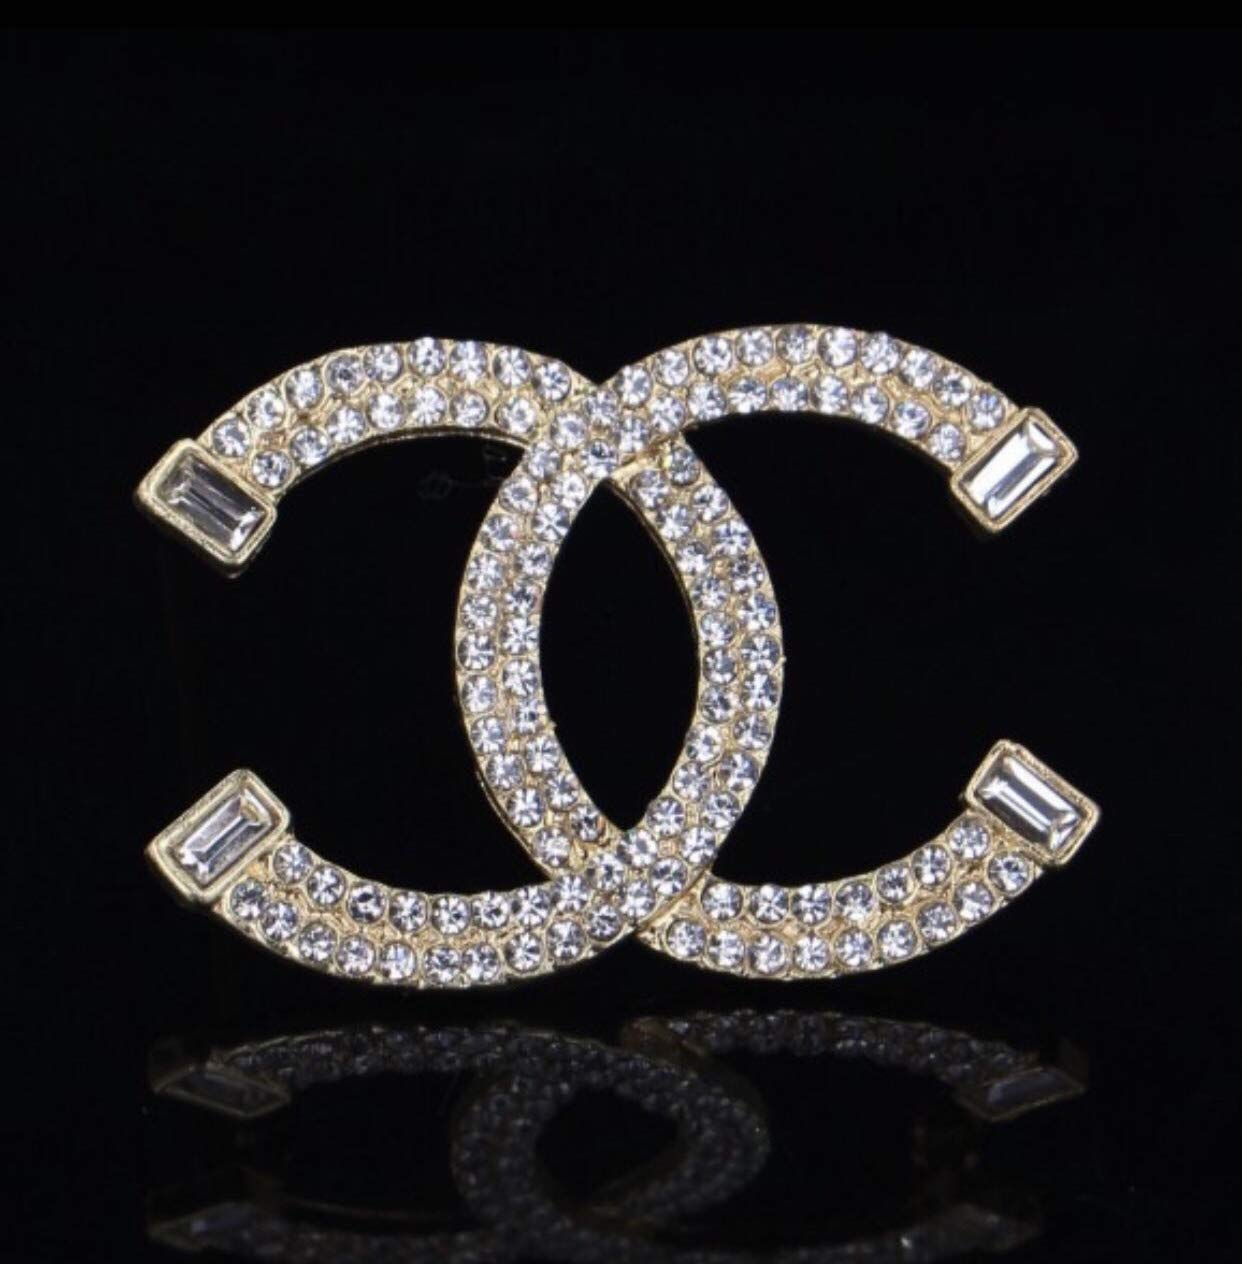 New Fashion womens C.C. diamond rhinestone Brooch Brooches pin Gift Silver